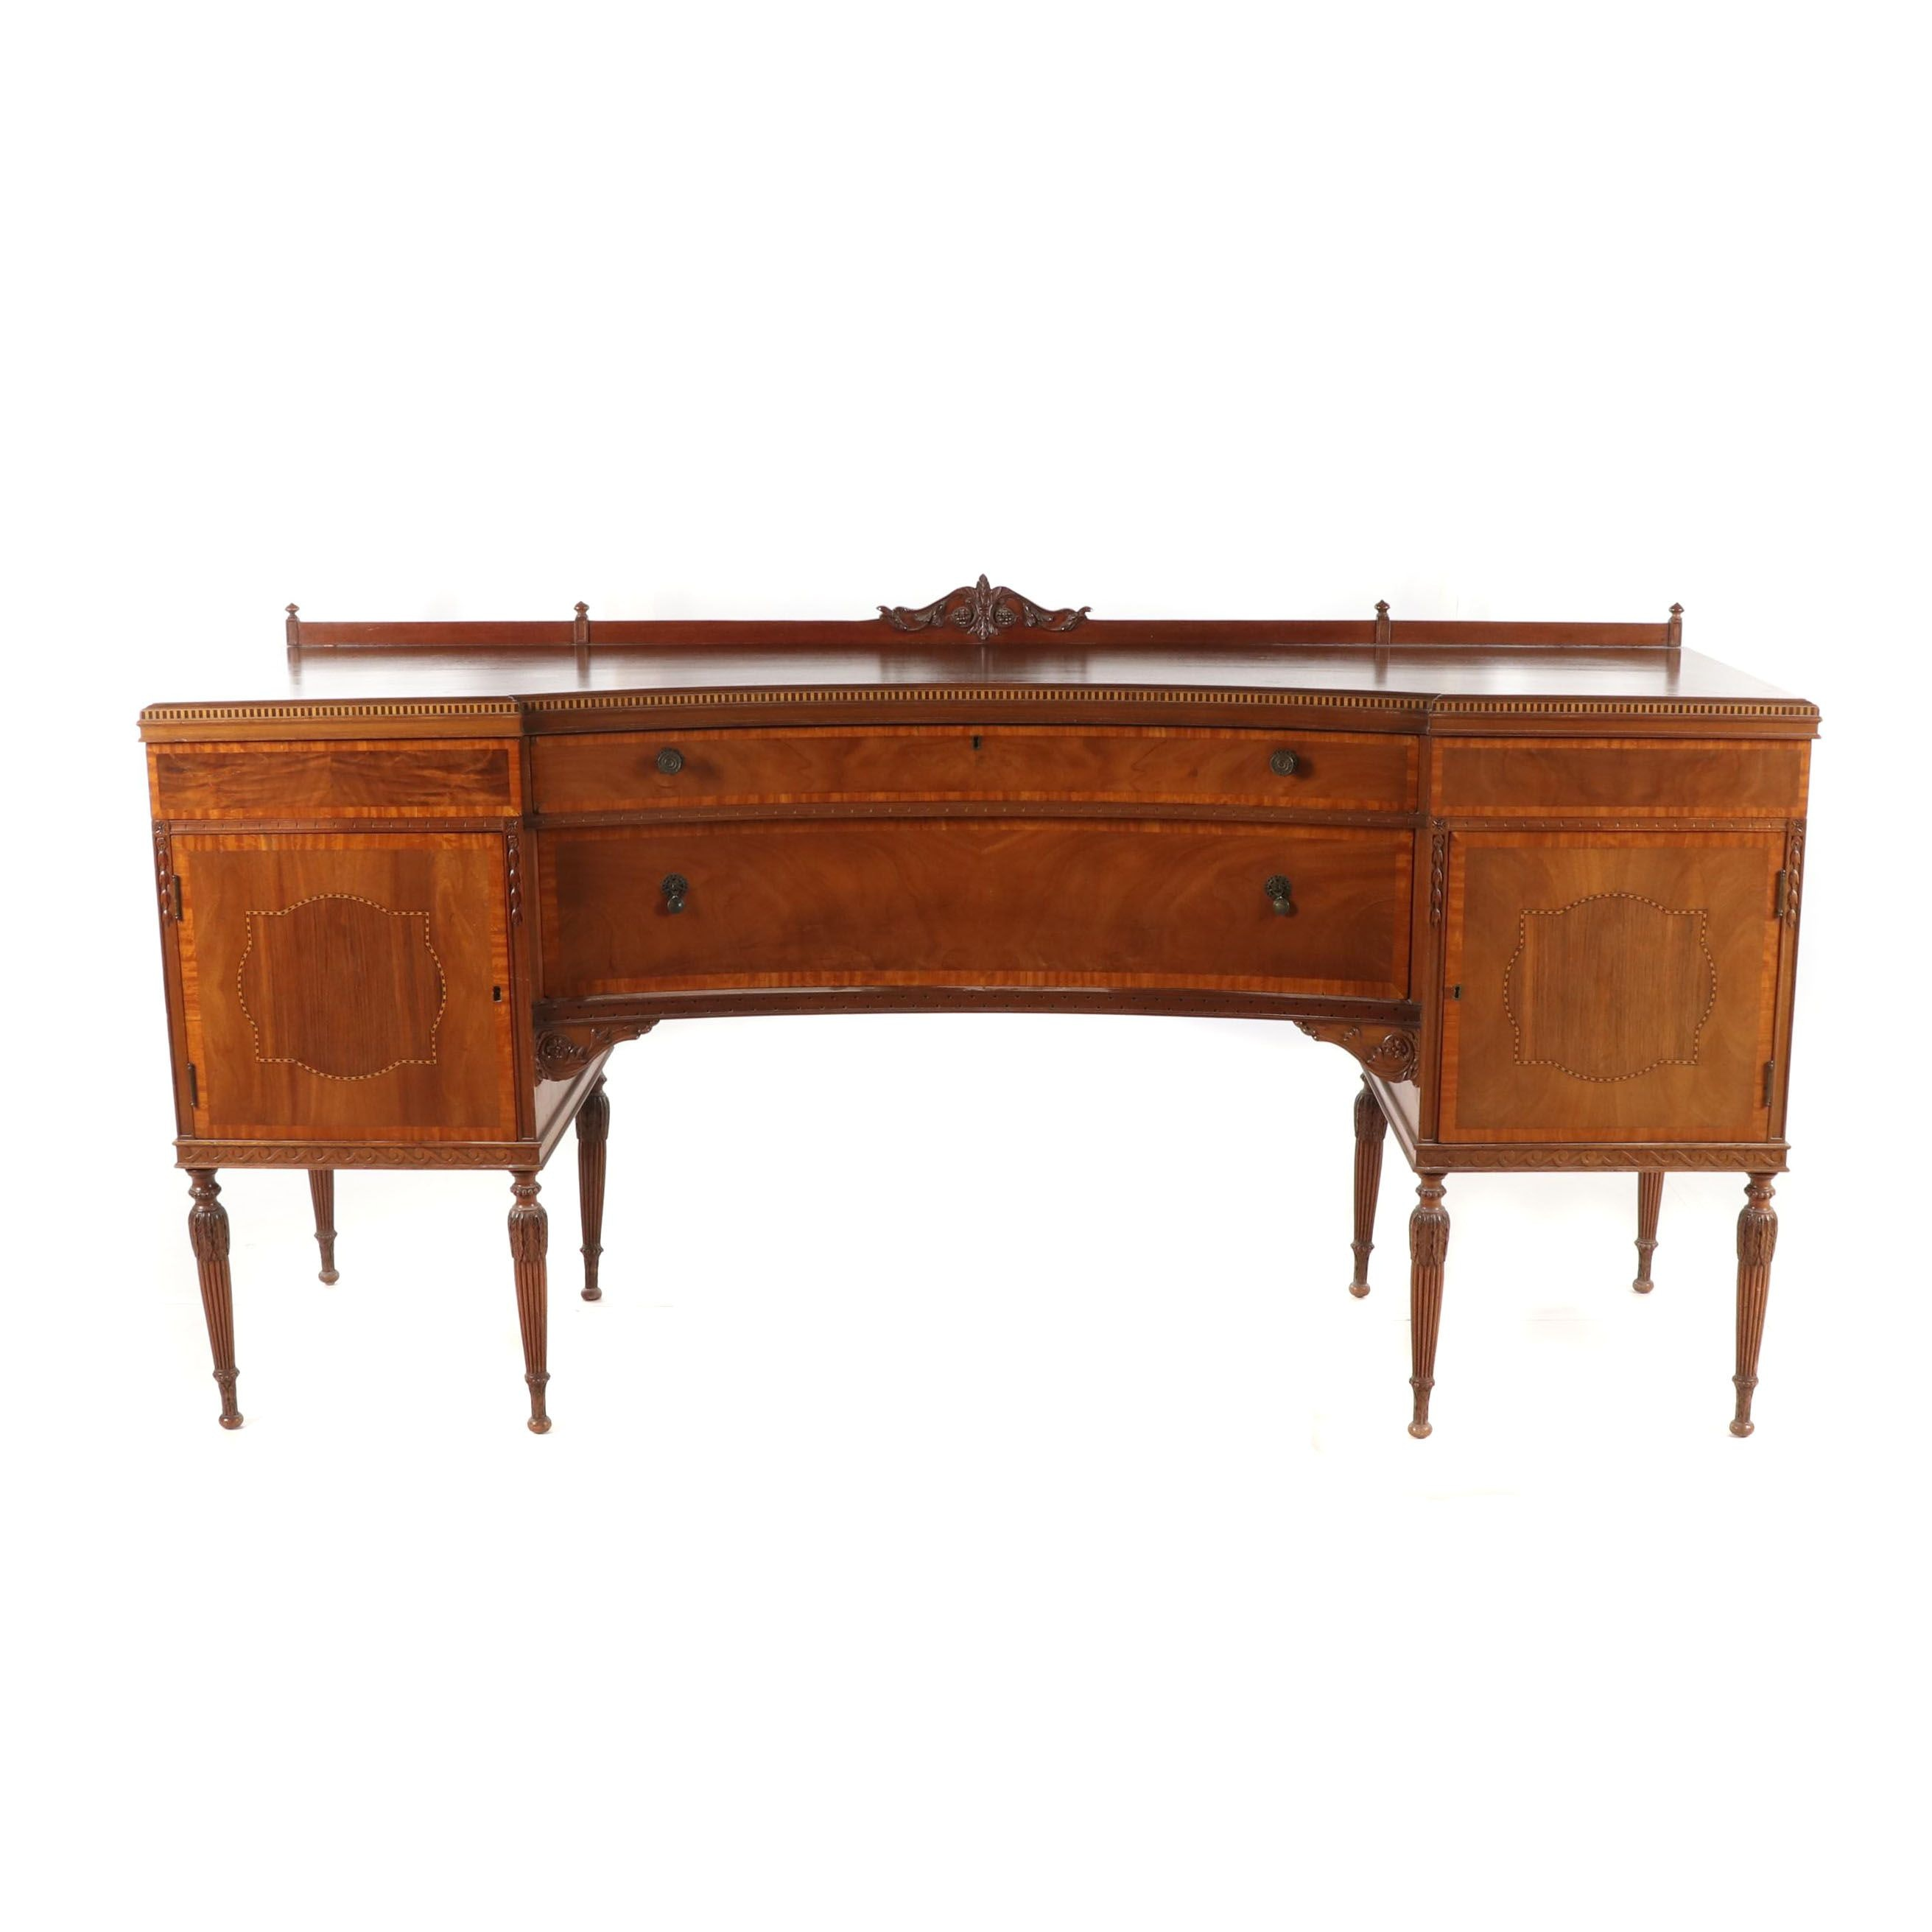 Louis XVI Style Walnut Sideboard, Late 19th Century